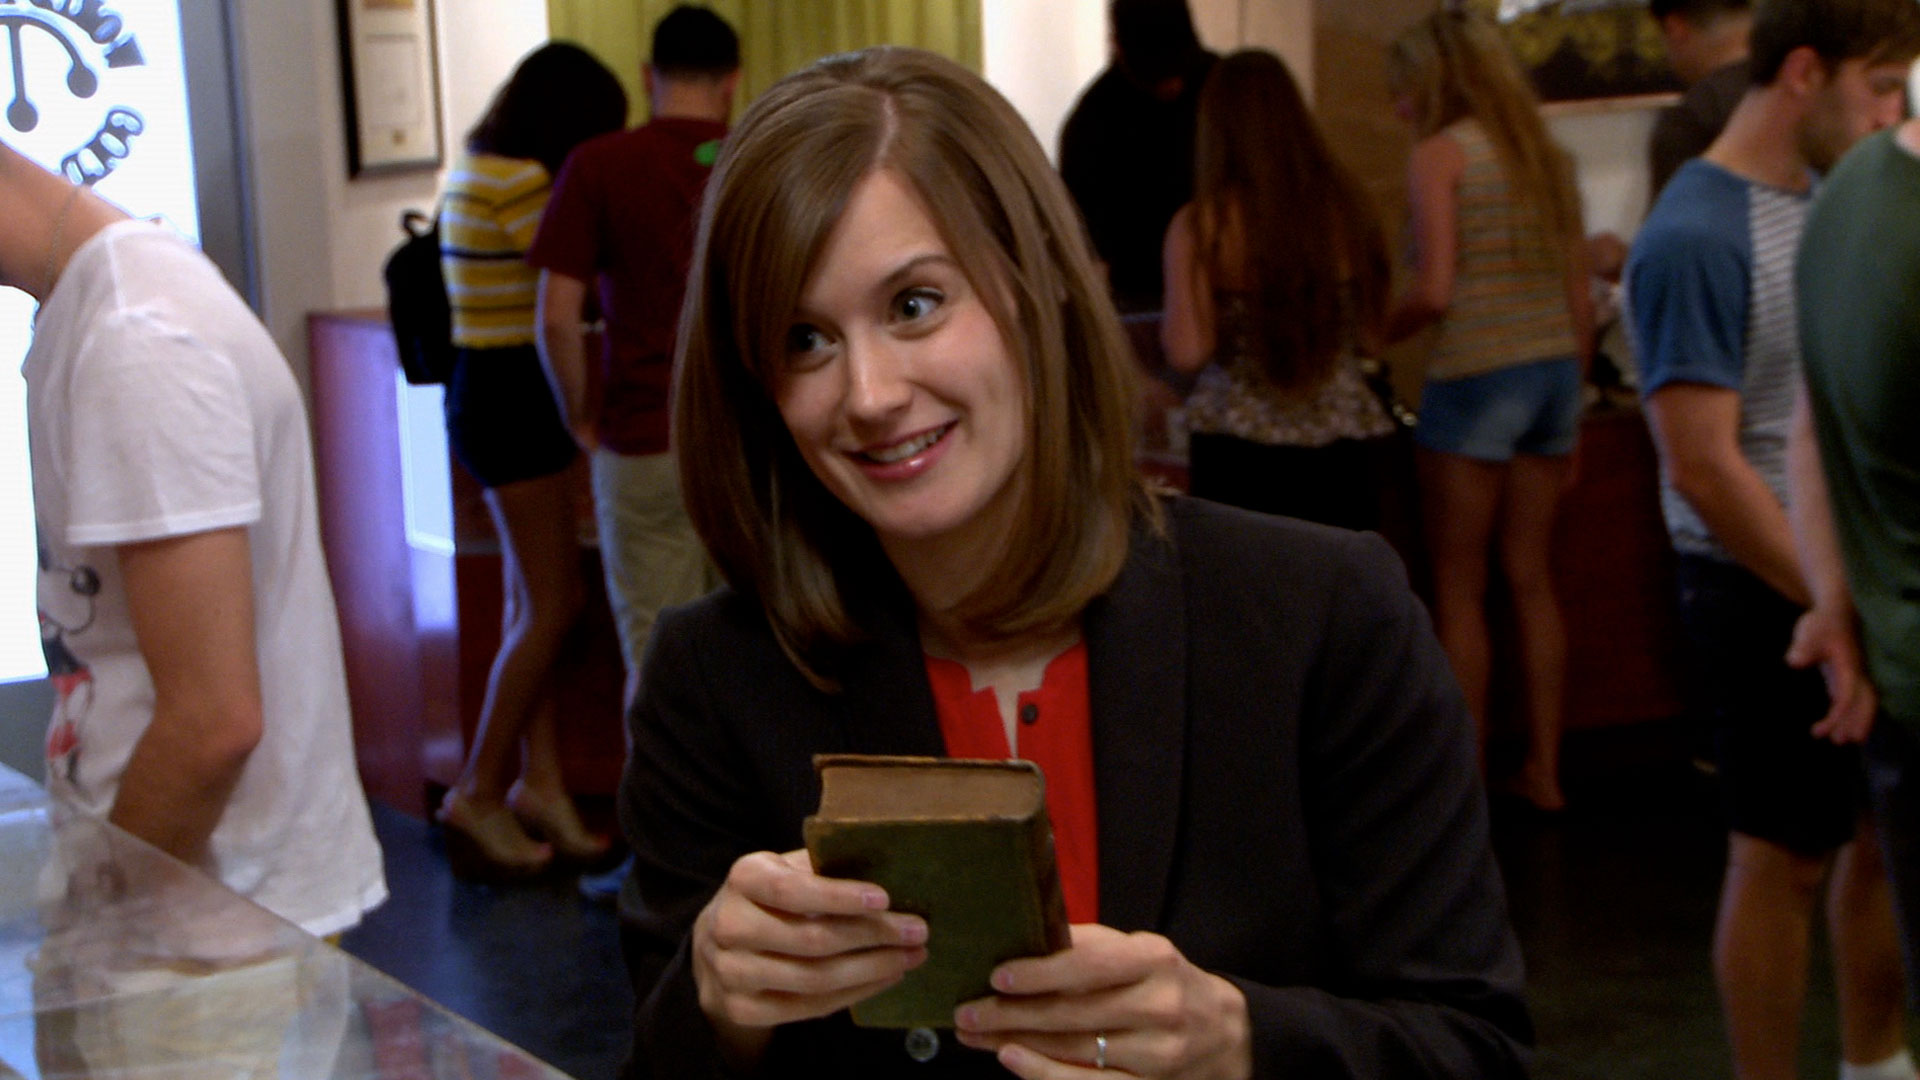 Rebecca Romney at Gold and Silver Pawn Shop holding a book in her hand